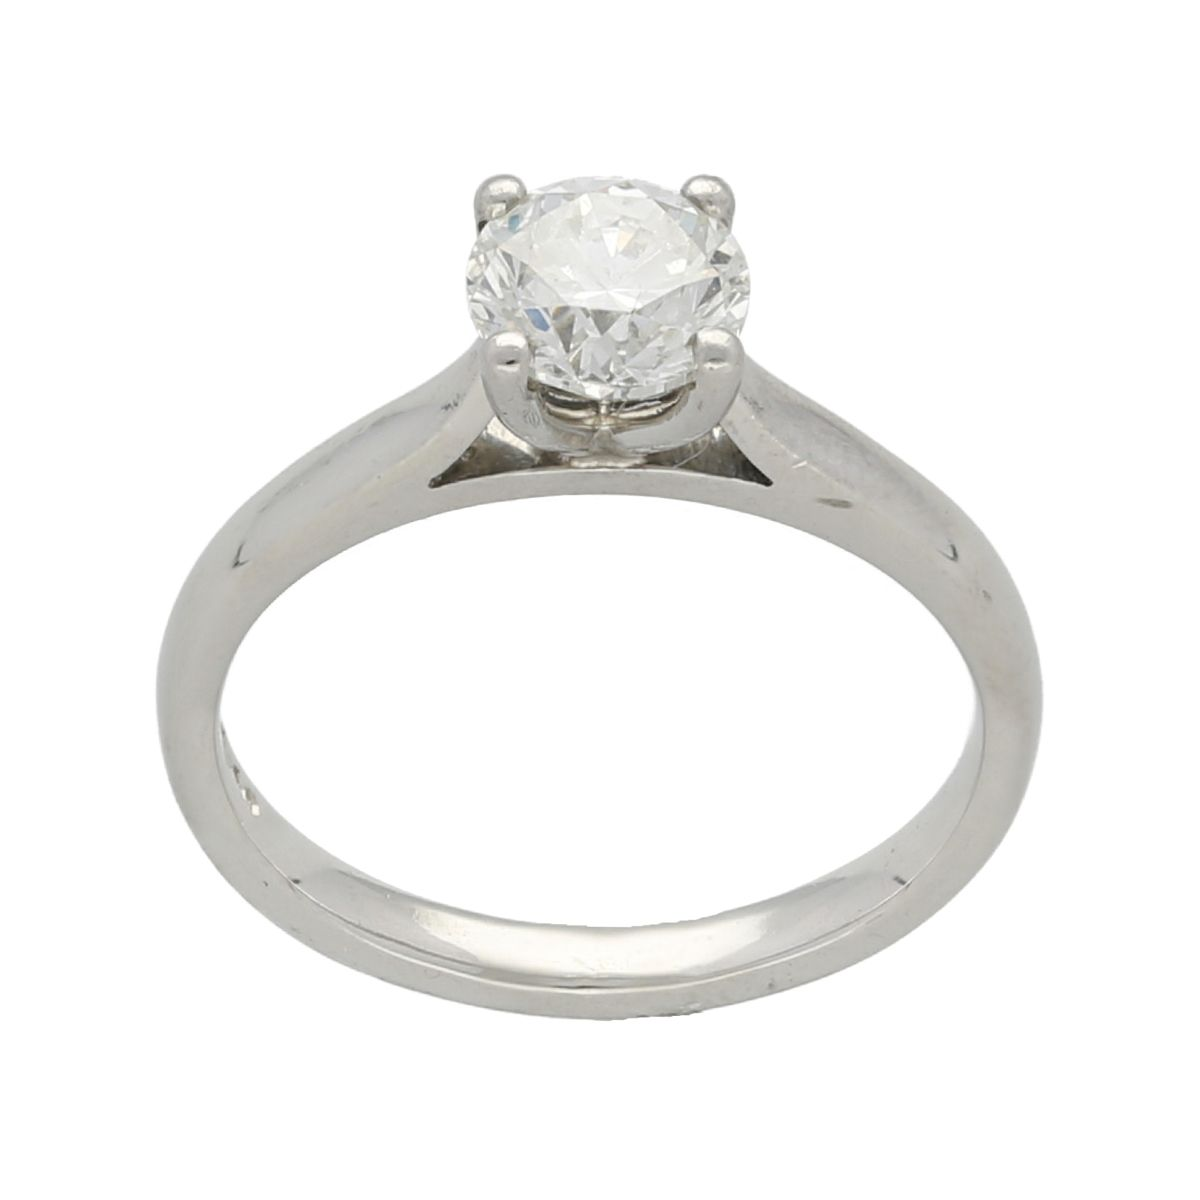 Platinum 1.01ct Round Brilliant Cut Diamond Solitaire Ladies Ring Size L